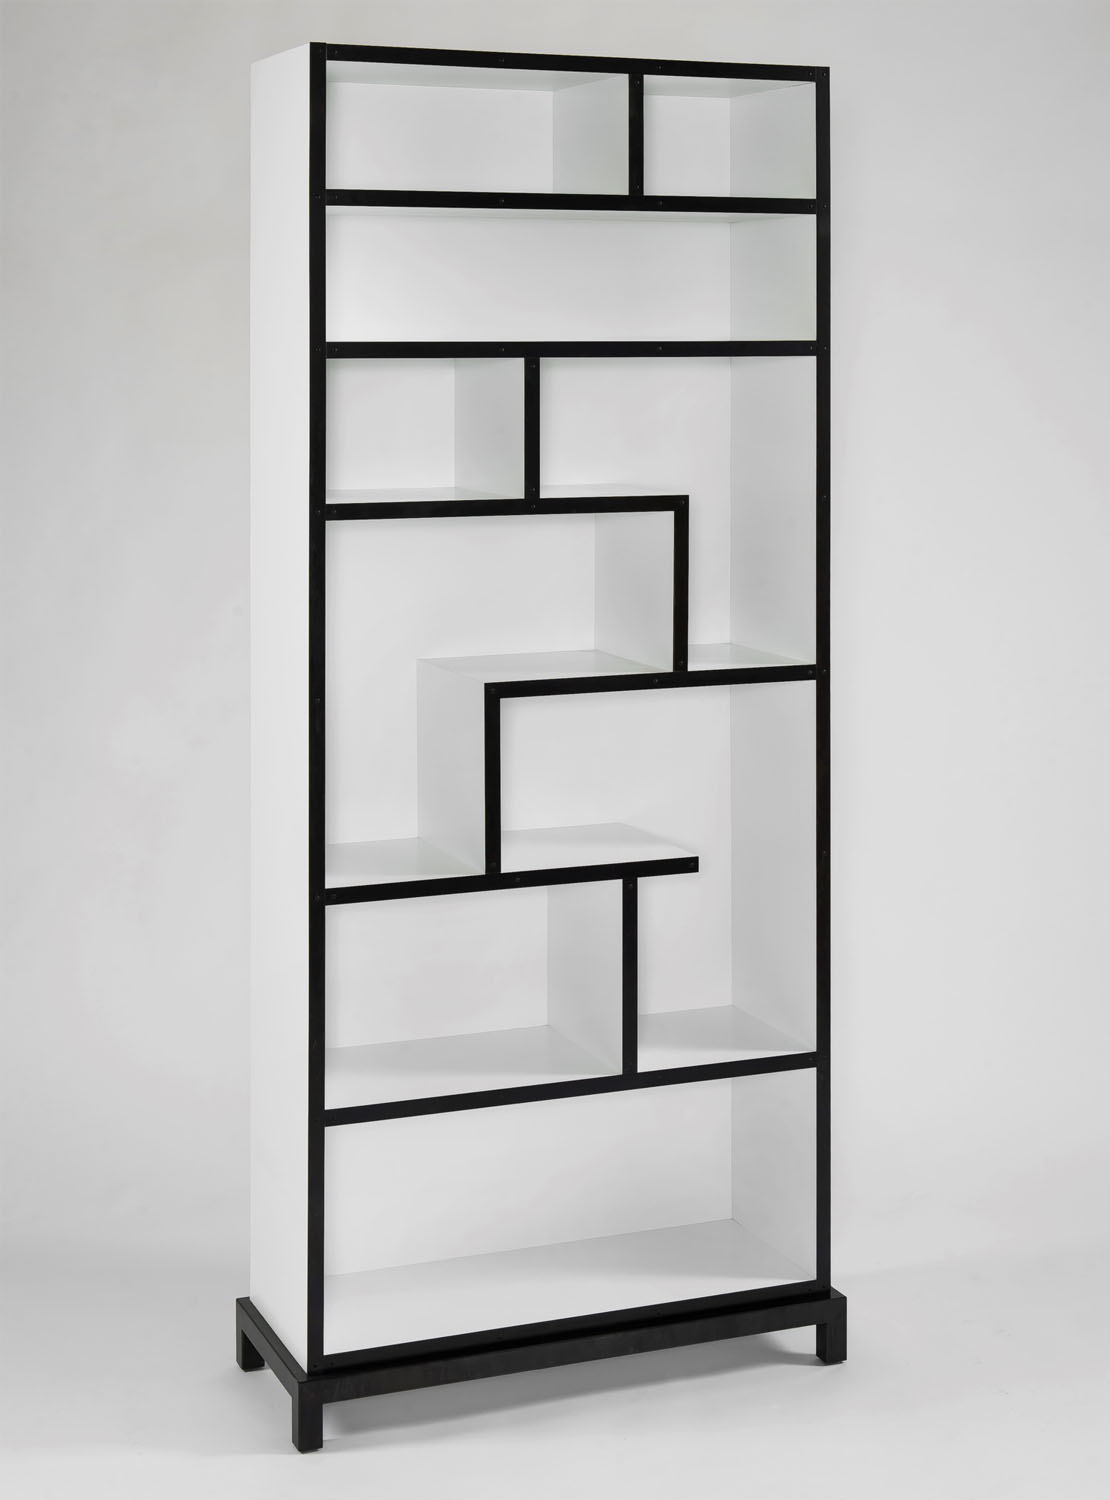 bookshelf-white-black-harris-rubin.jpg